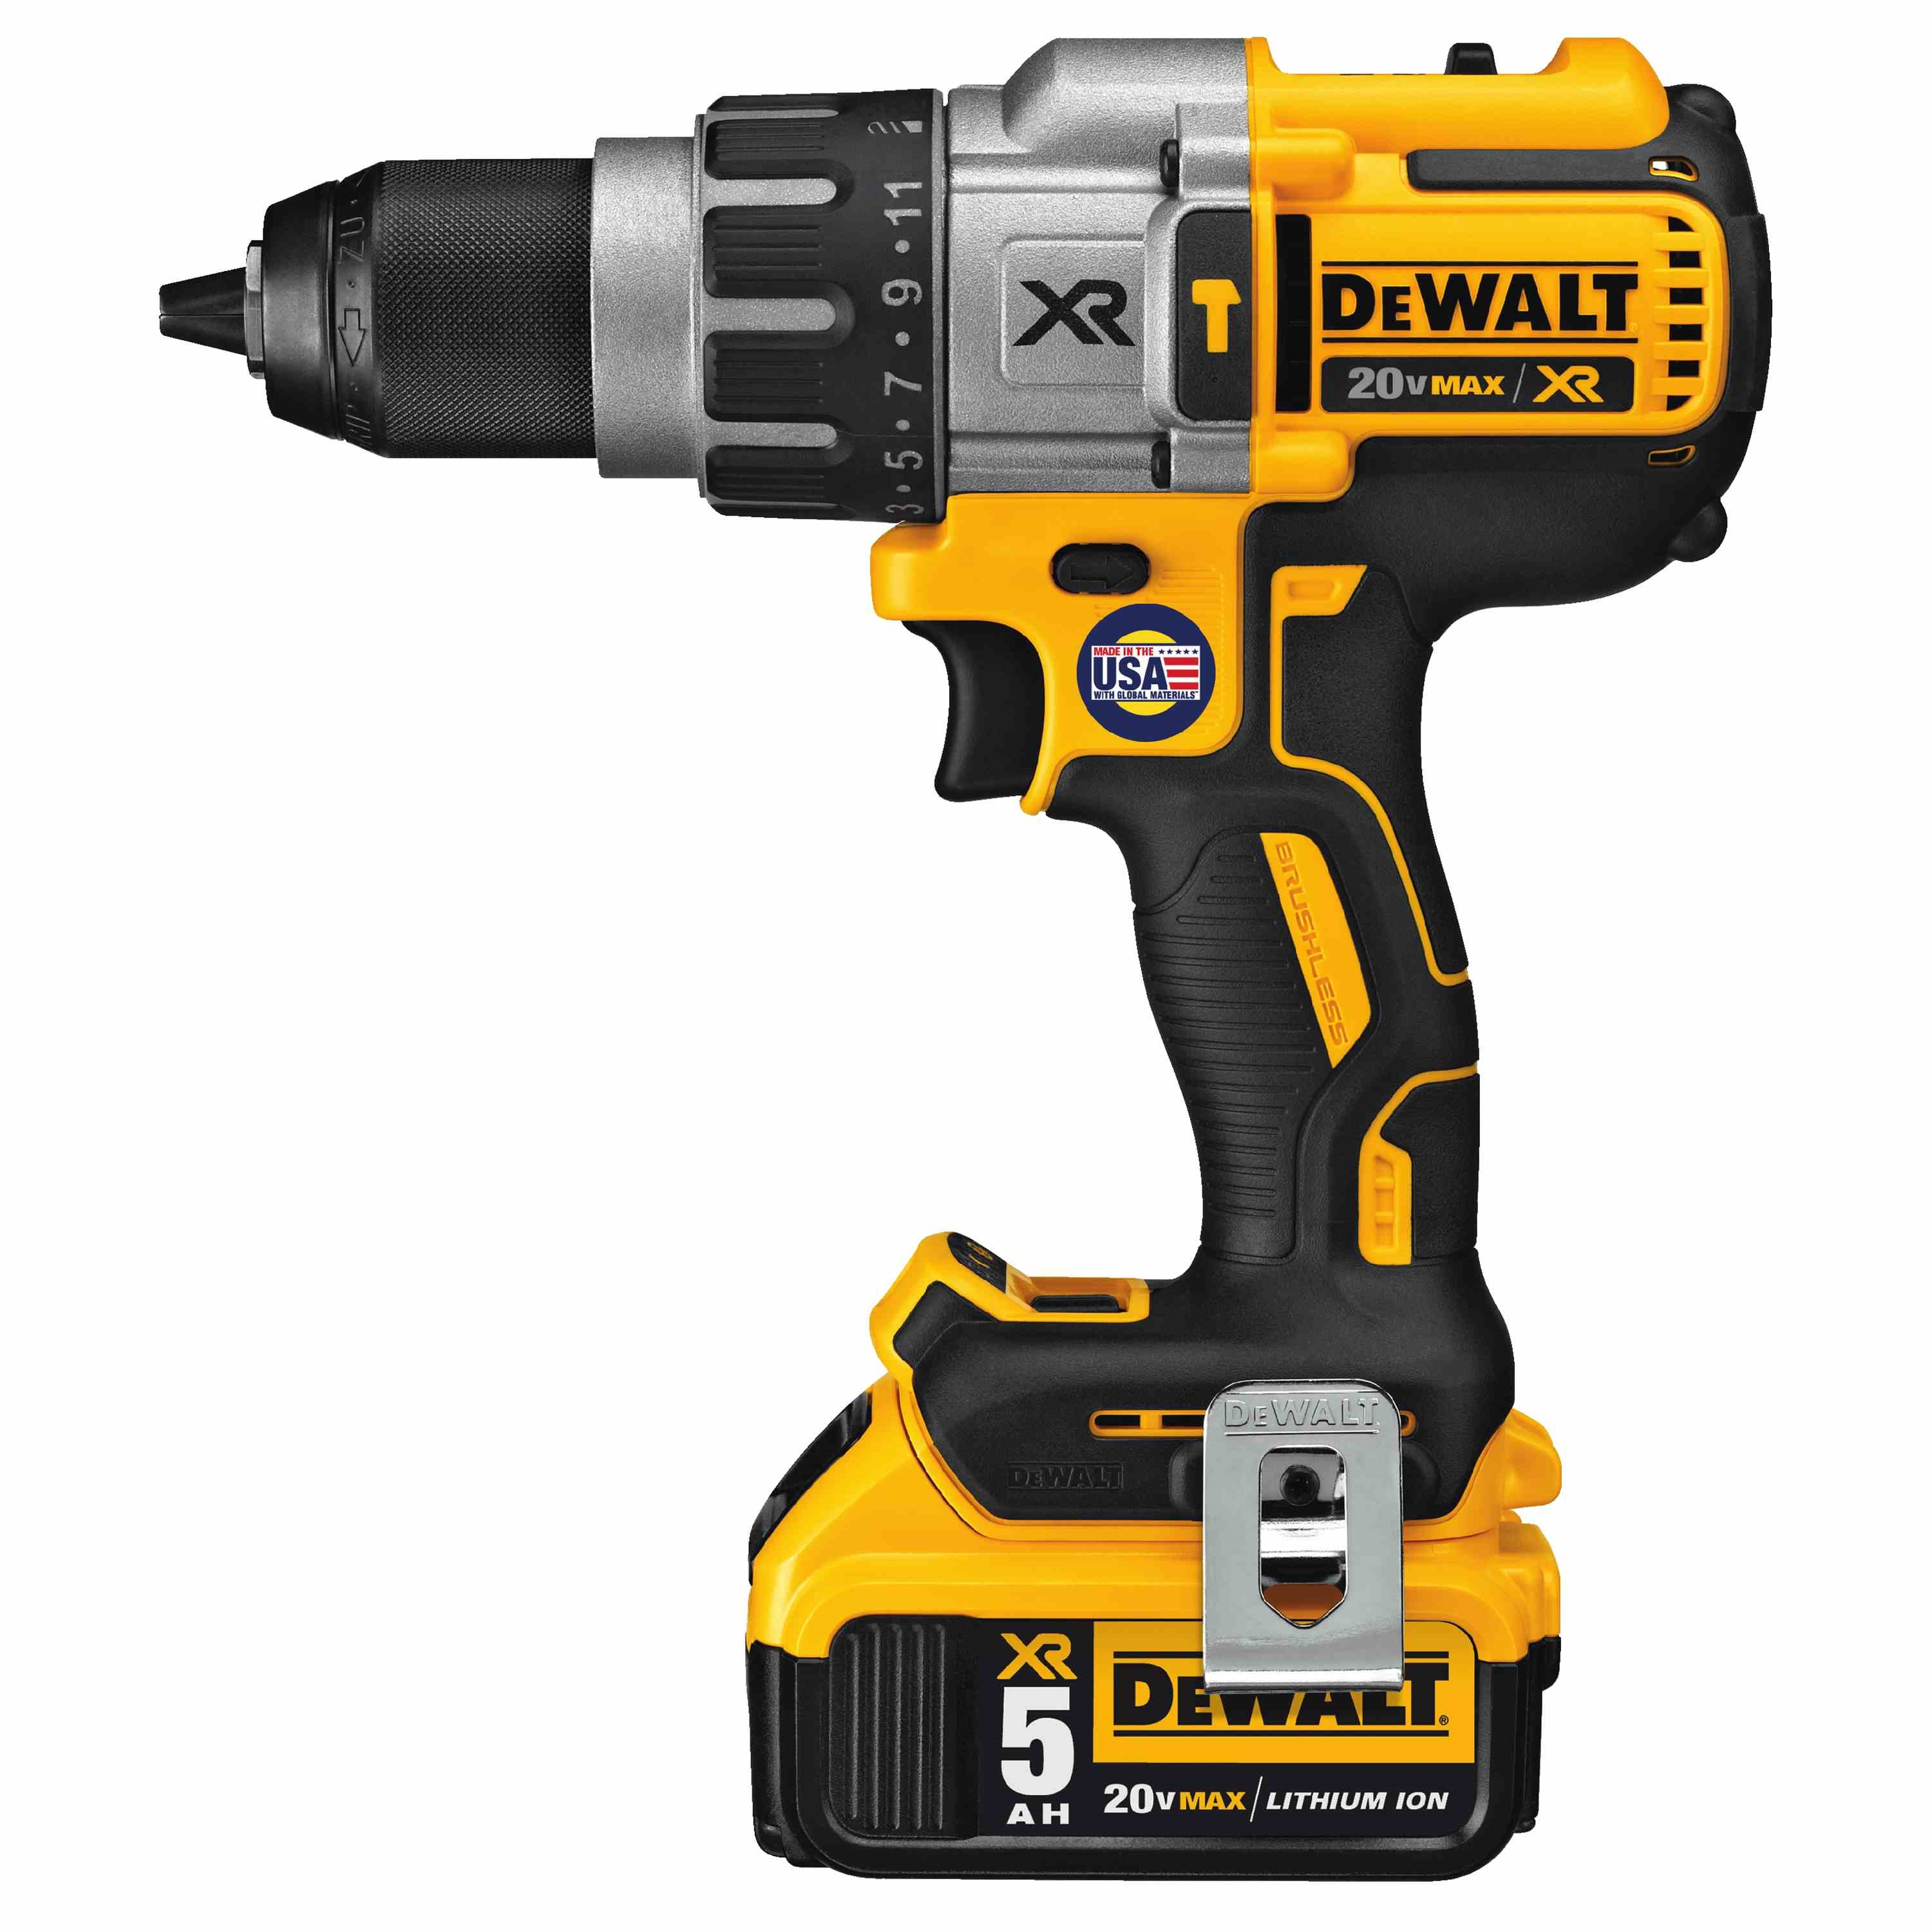 DWLT DCD996P2 20V MAX XR LITHIUM ION BRUSHLESS PREMIUM 3-SPEED HAMMERDRILL KIT (5.0AH)